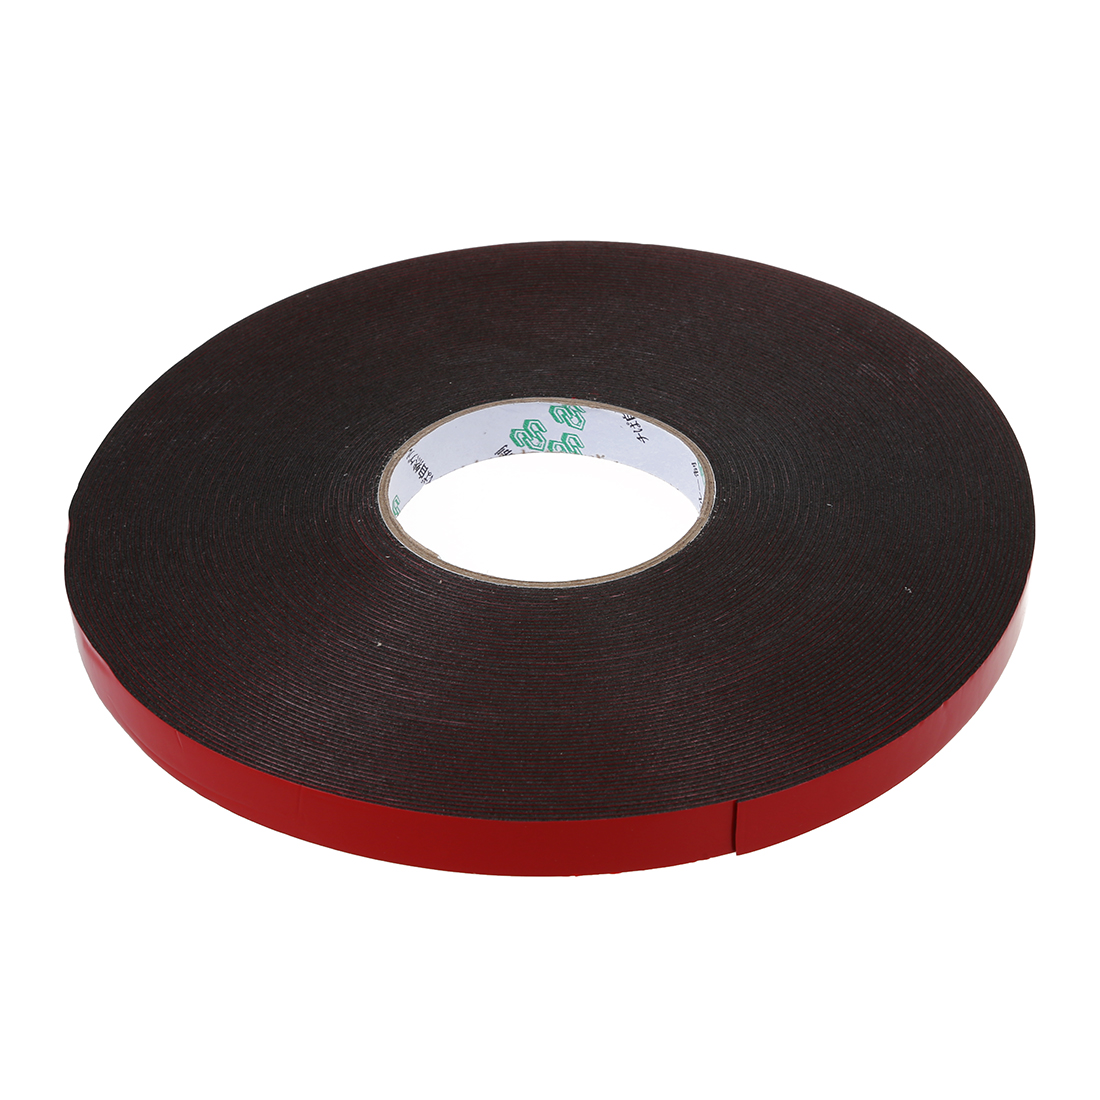 hot sale 96g 15mm wide car double sided molding attachment foam tape cp ebay. Black Bedroom Furniture Sets. Home Design Ideas